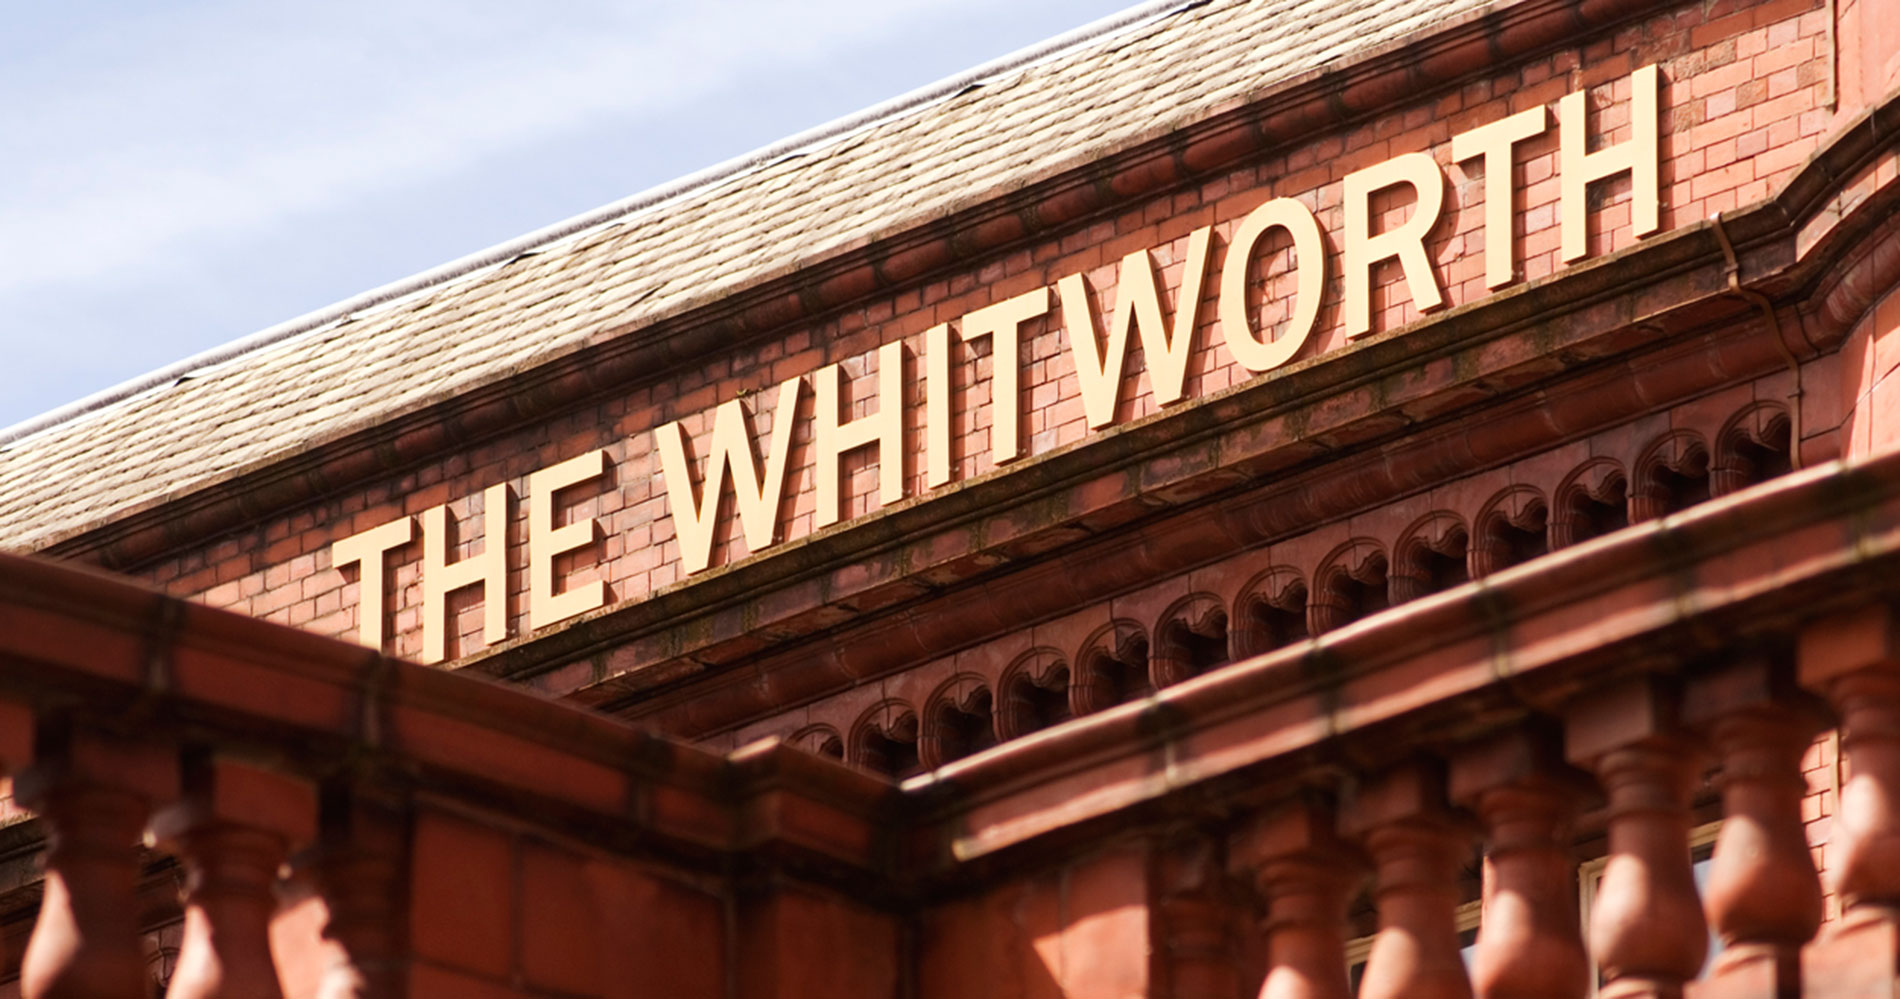 Whitworth Art Gallery